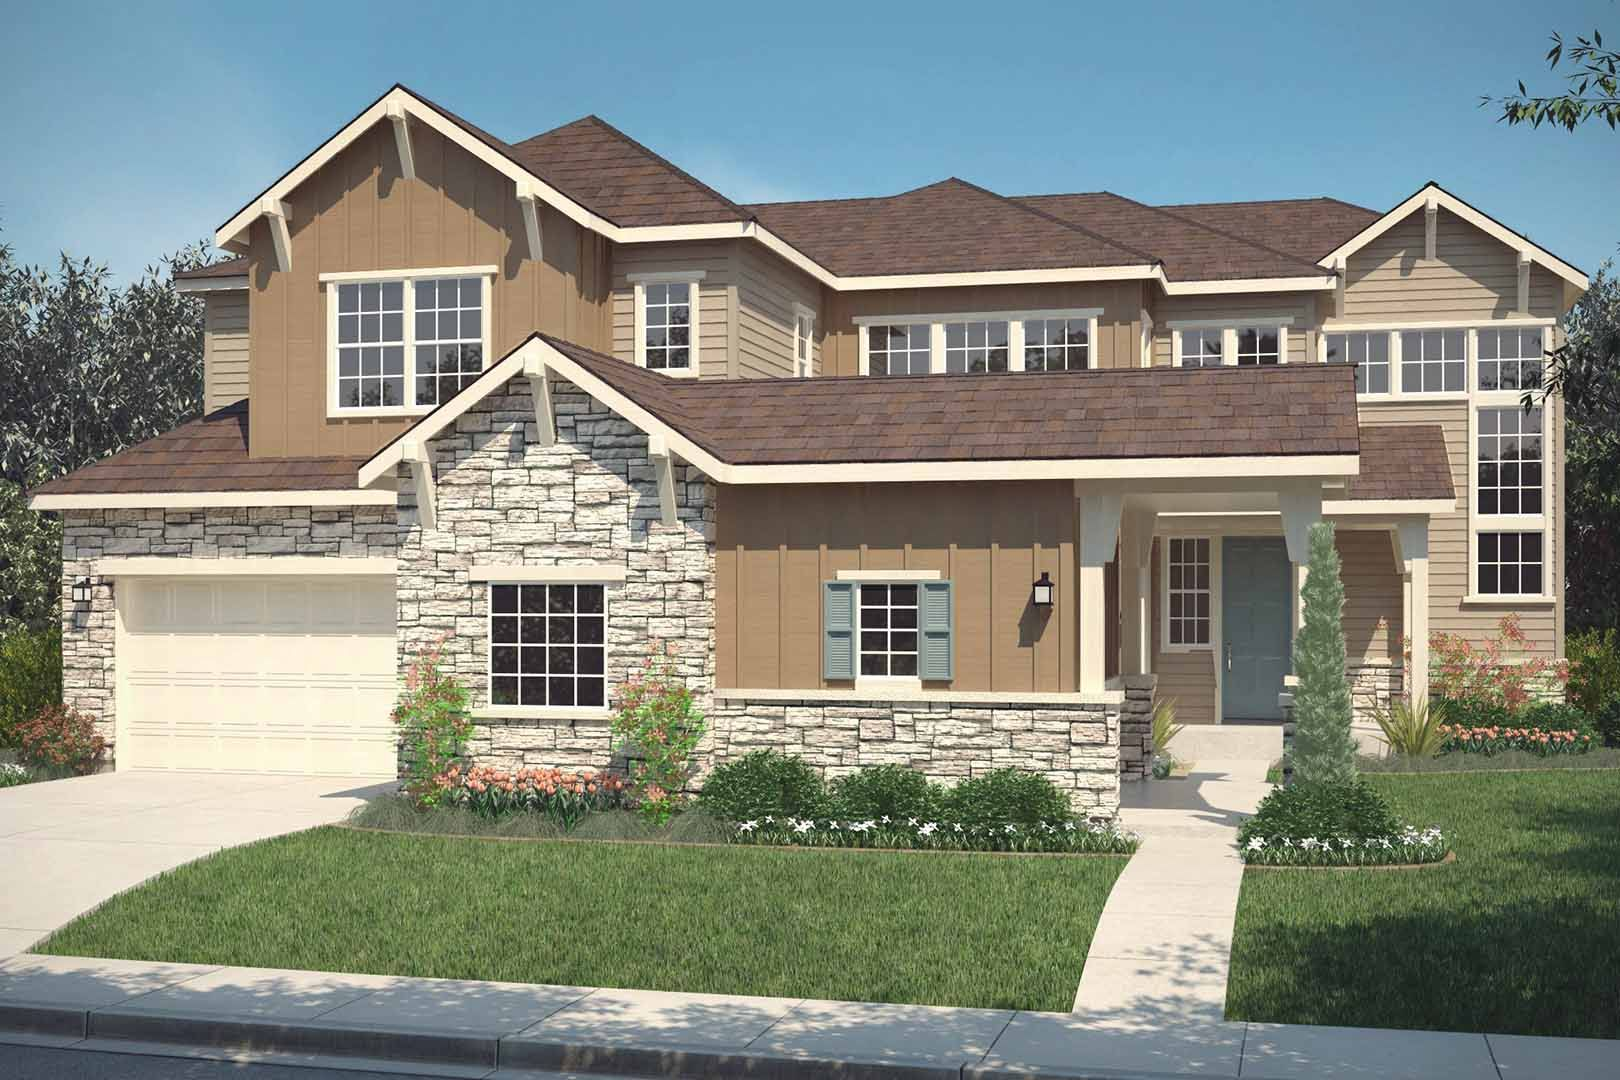 Single Family for Sale at Encore Collection At Candelas - Residence 6004 19495 W 94th Ave Arvada, Colorado 80007 United States